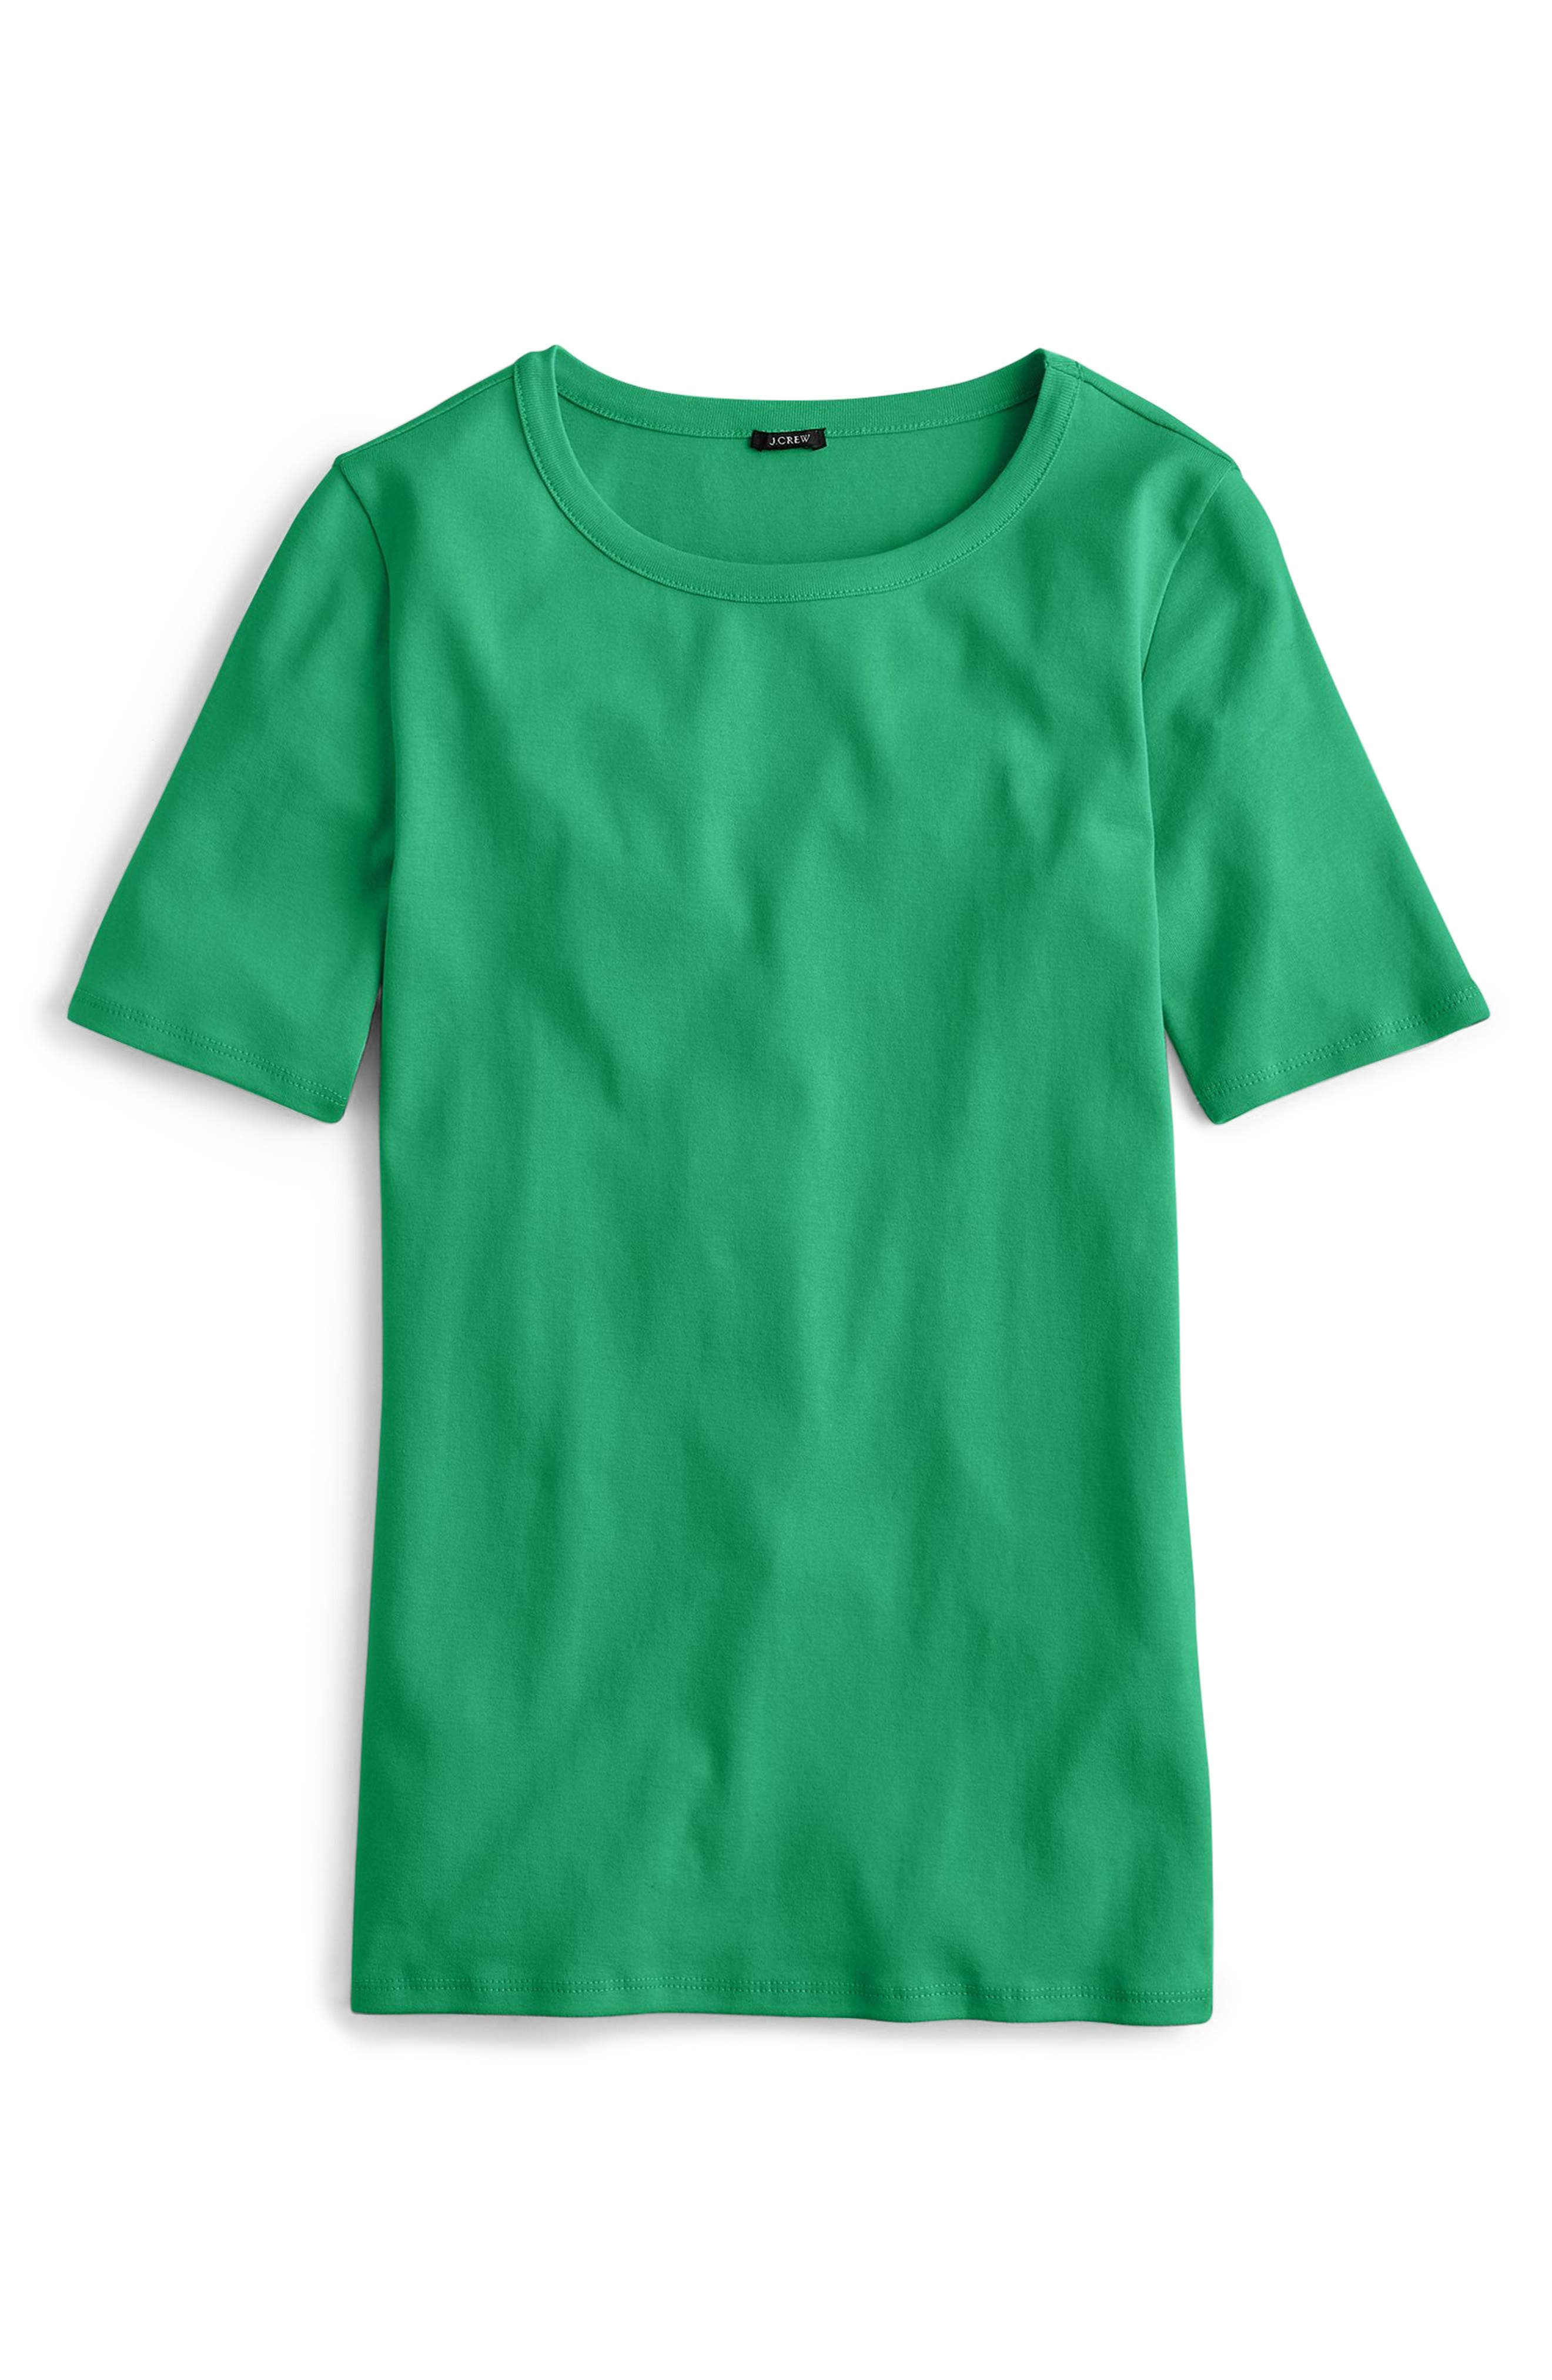 New Perfect Fit T-Shirt,                         Main,                         color, ALPINE MEADOW